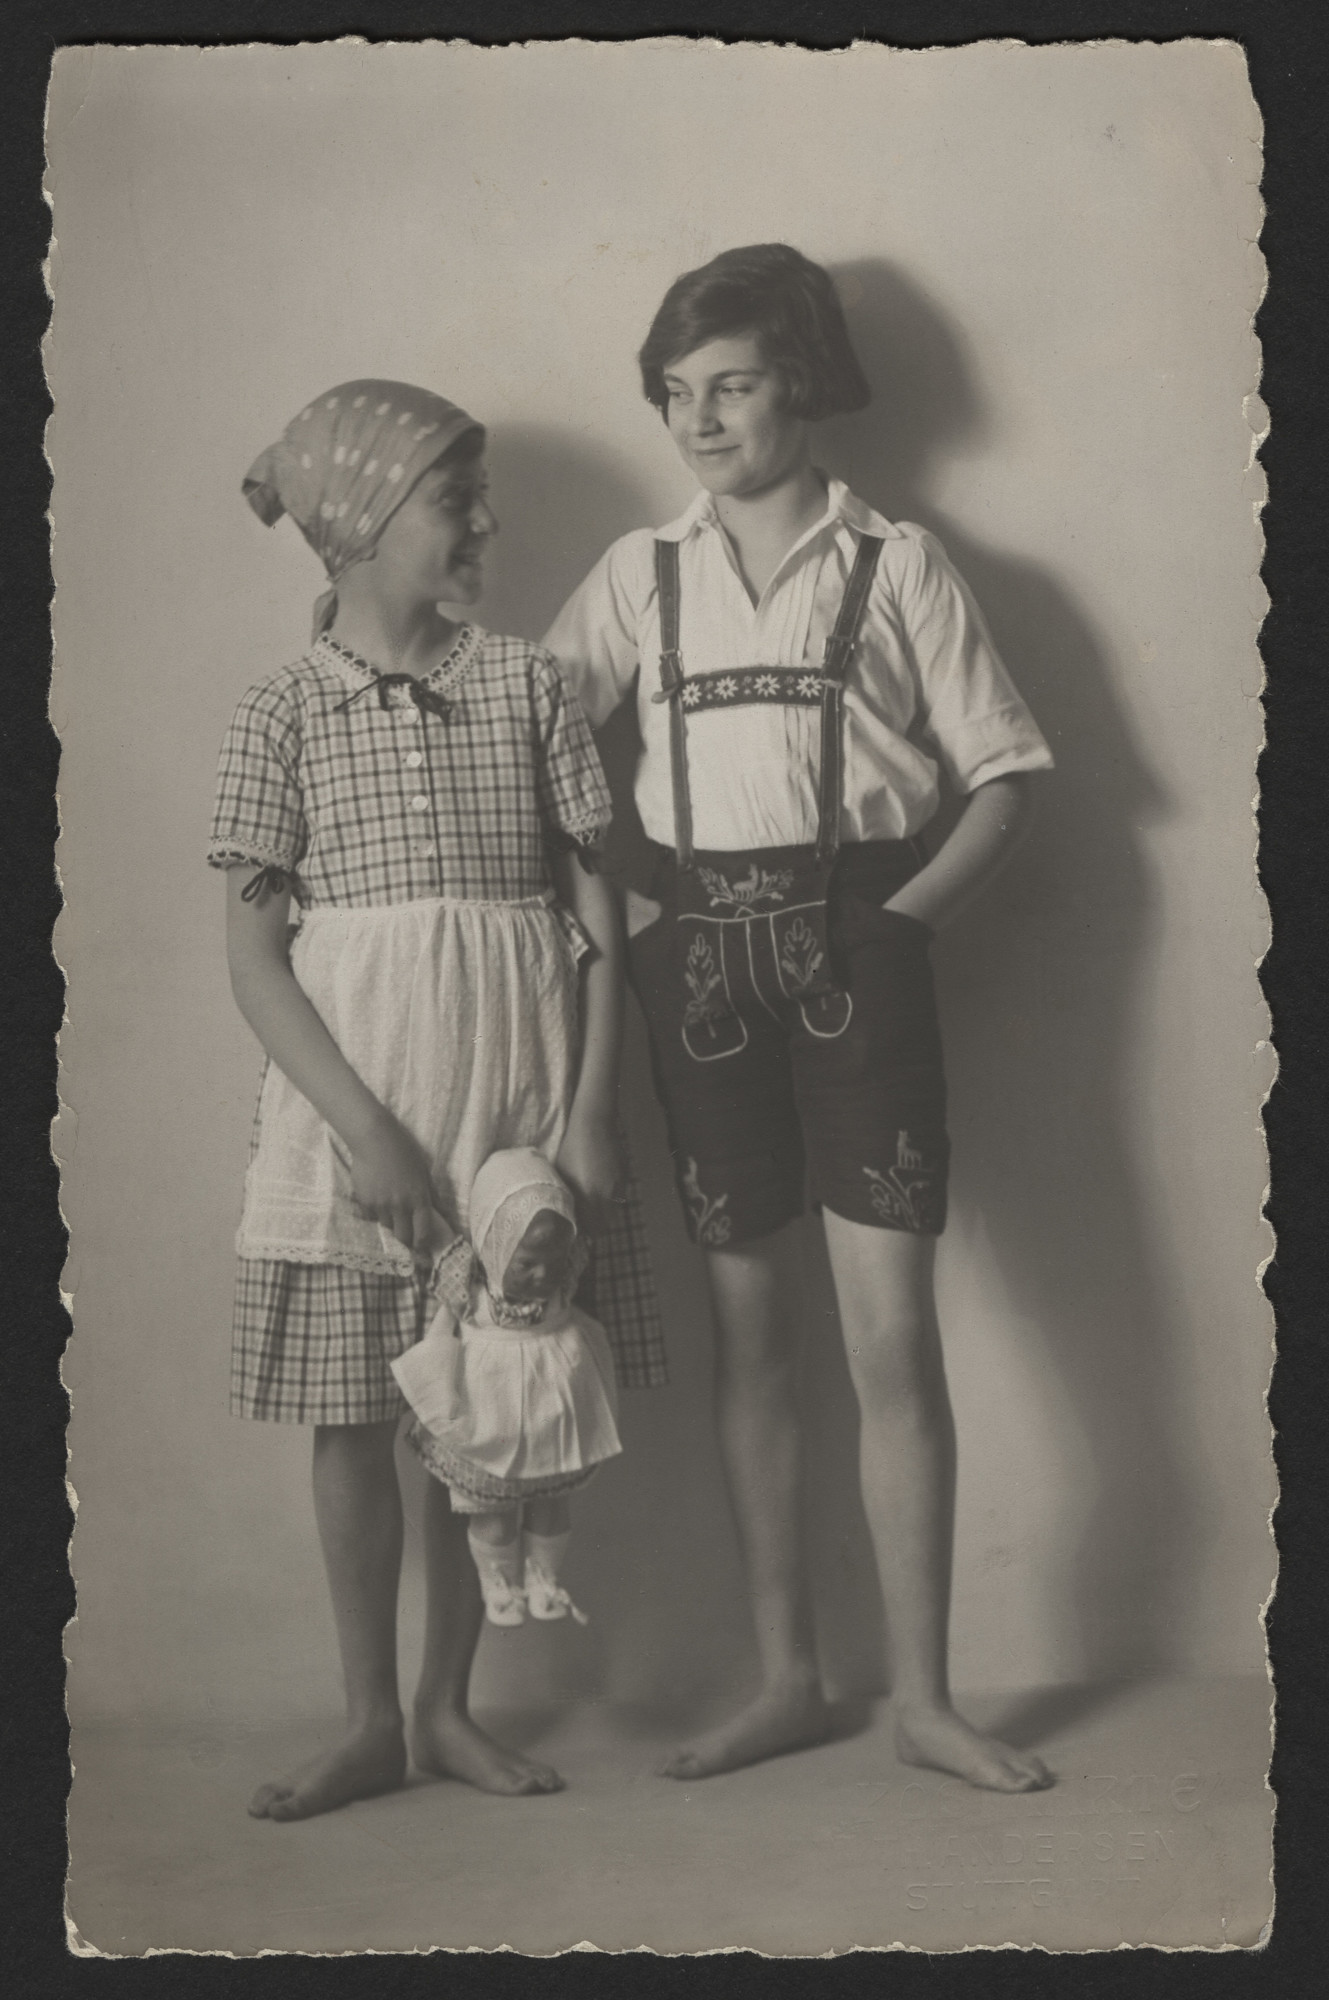 Margot Levi (later Weinshenk) and her brother Walter (left) dressed in opposite gender traditional costumes, probably taken at the Hotel Waldlust in Freudenstadt on the occasion of their grandfather Josef's birthday.